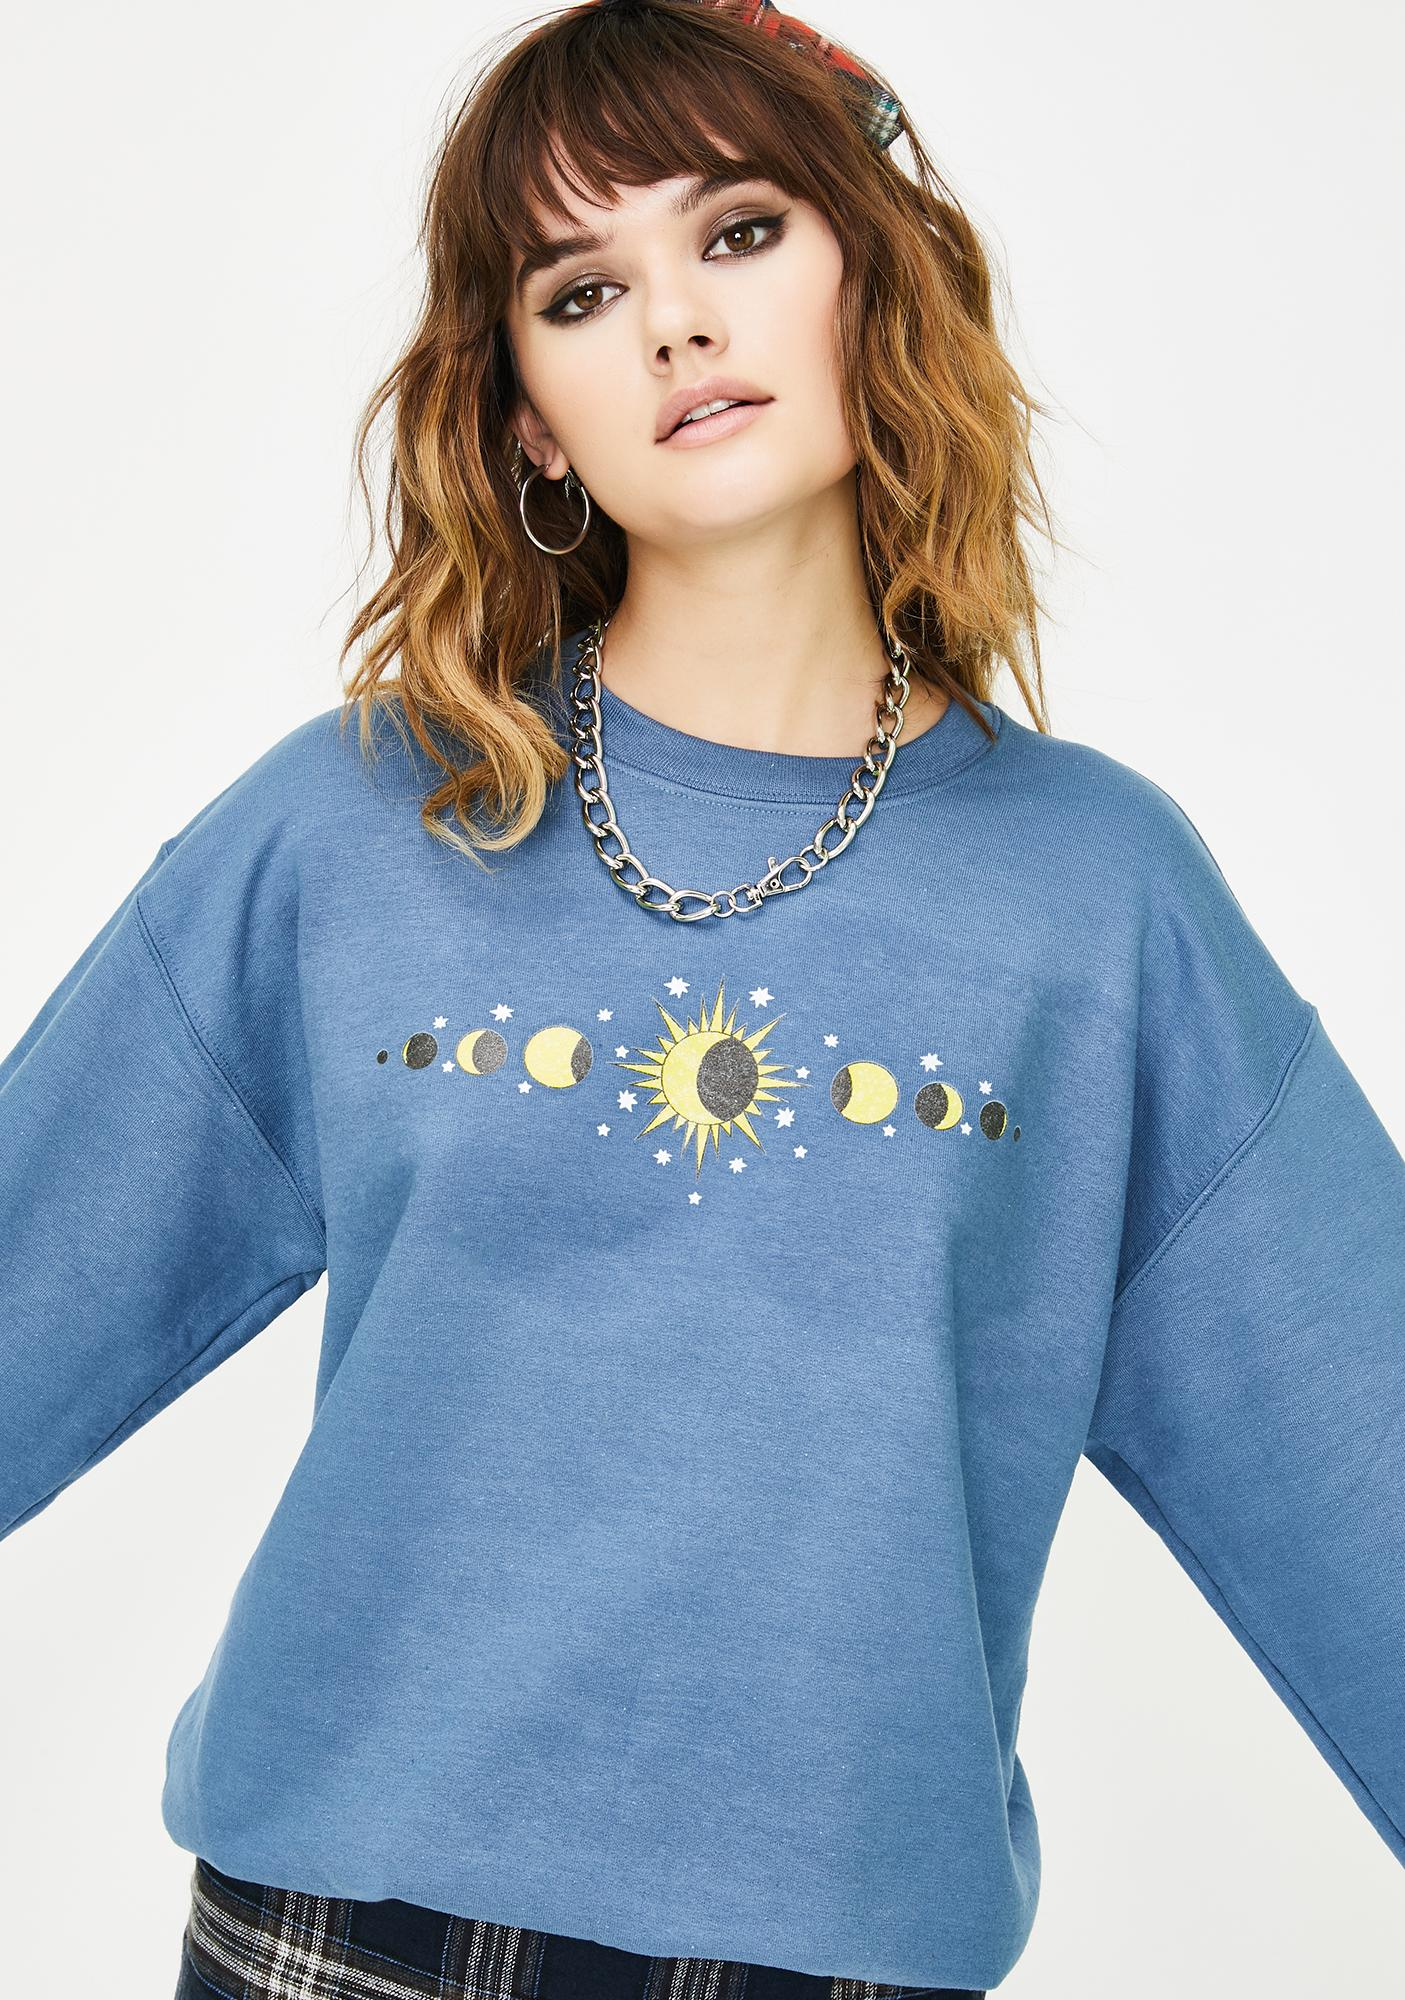 Phases Of The Moon Crew Neck Pullover by Daisy Street